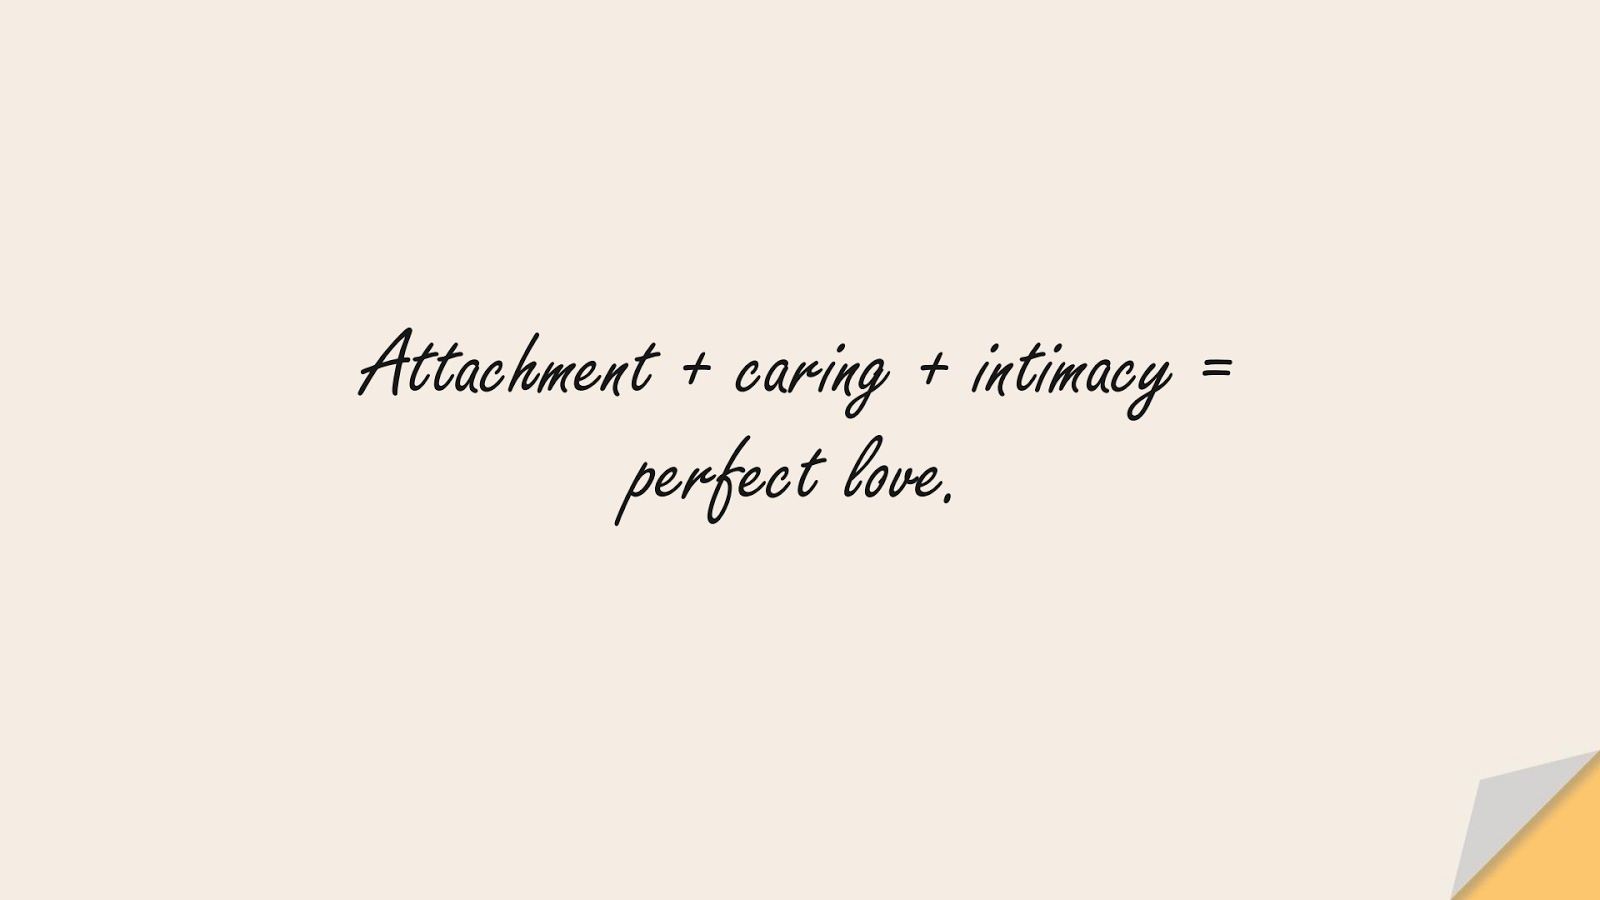 Attachment + caring + intimacy = perfect love.FALSE